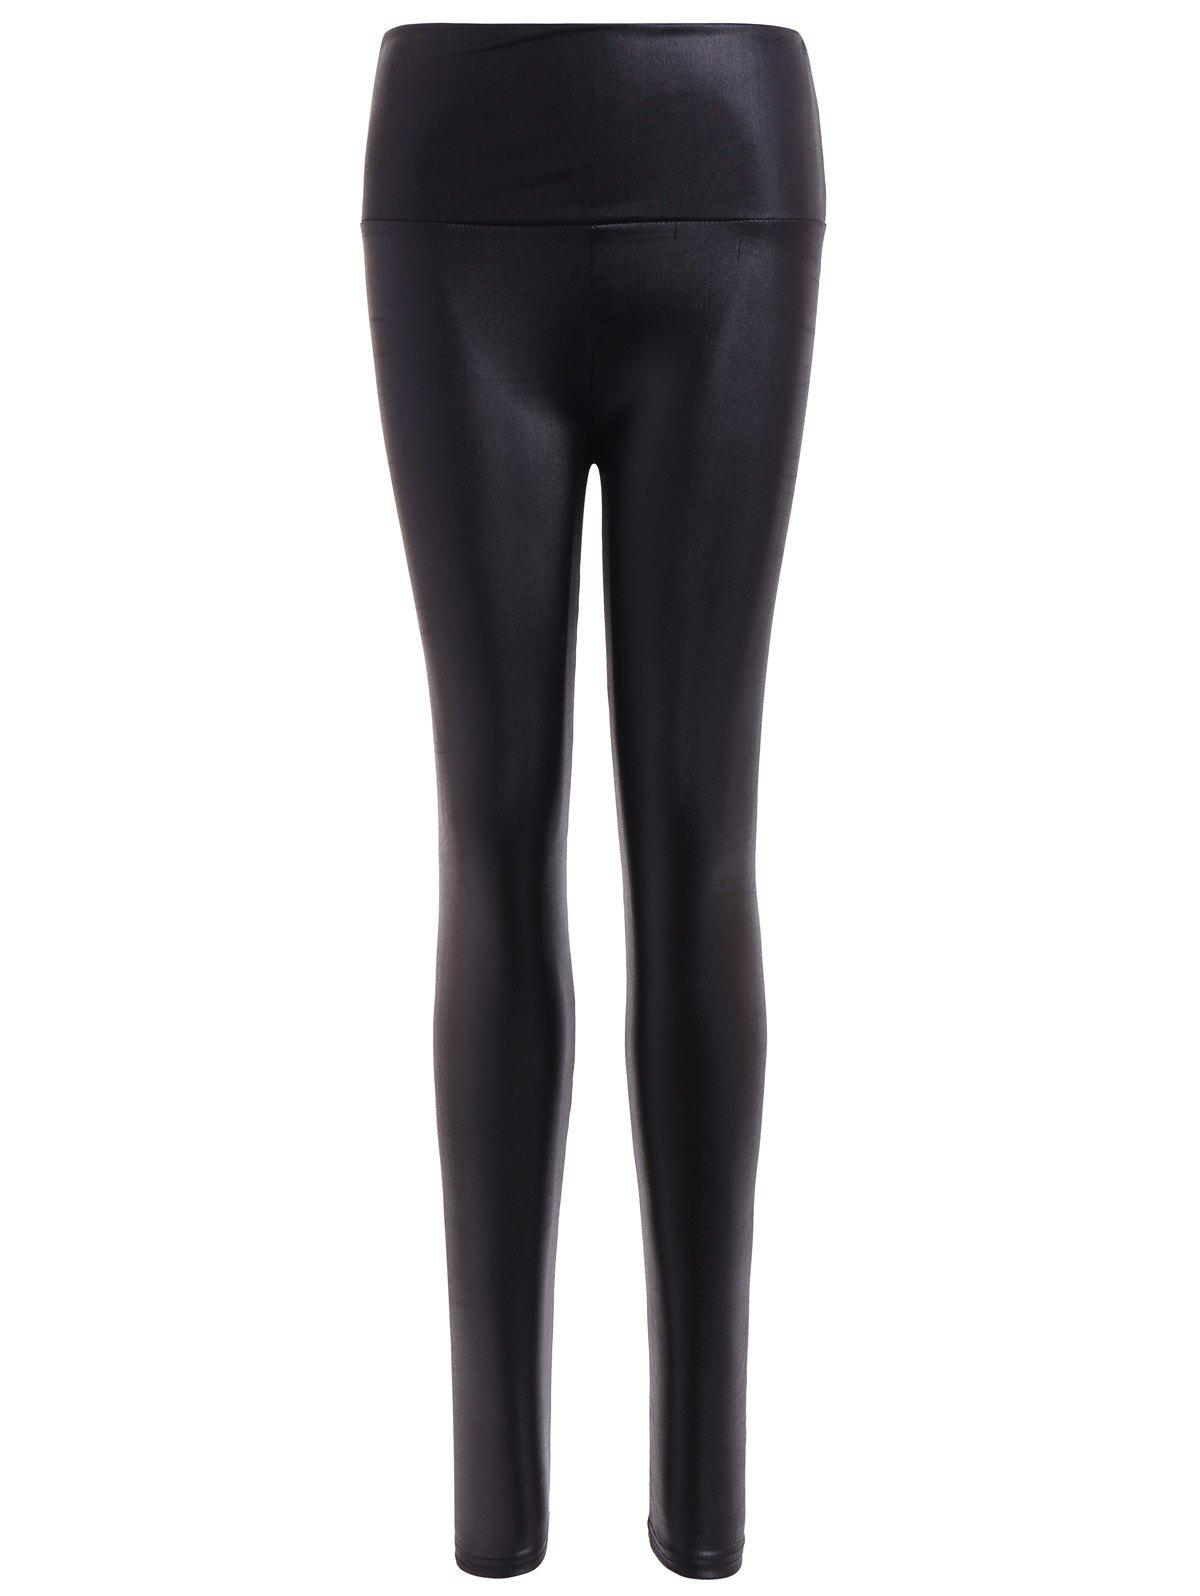 Unique Stretchy PU Leather Leggings